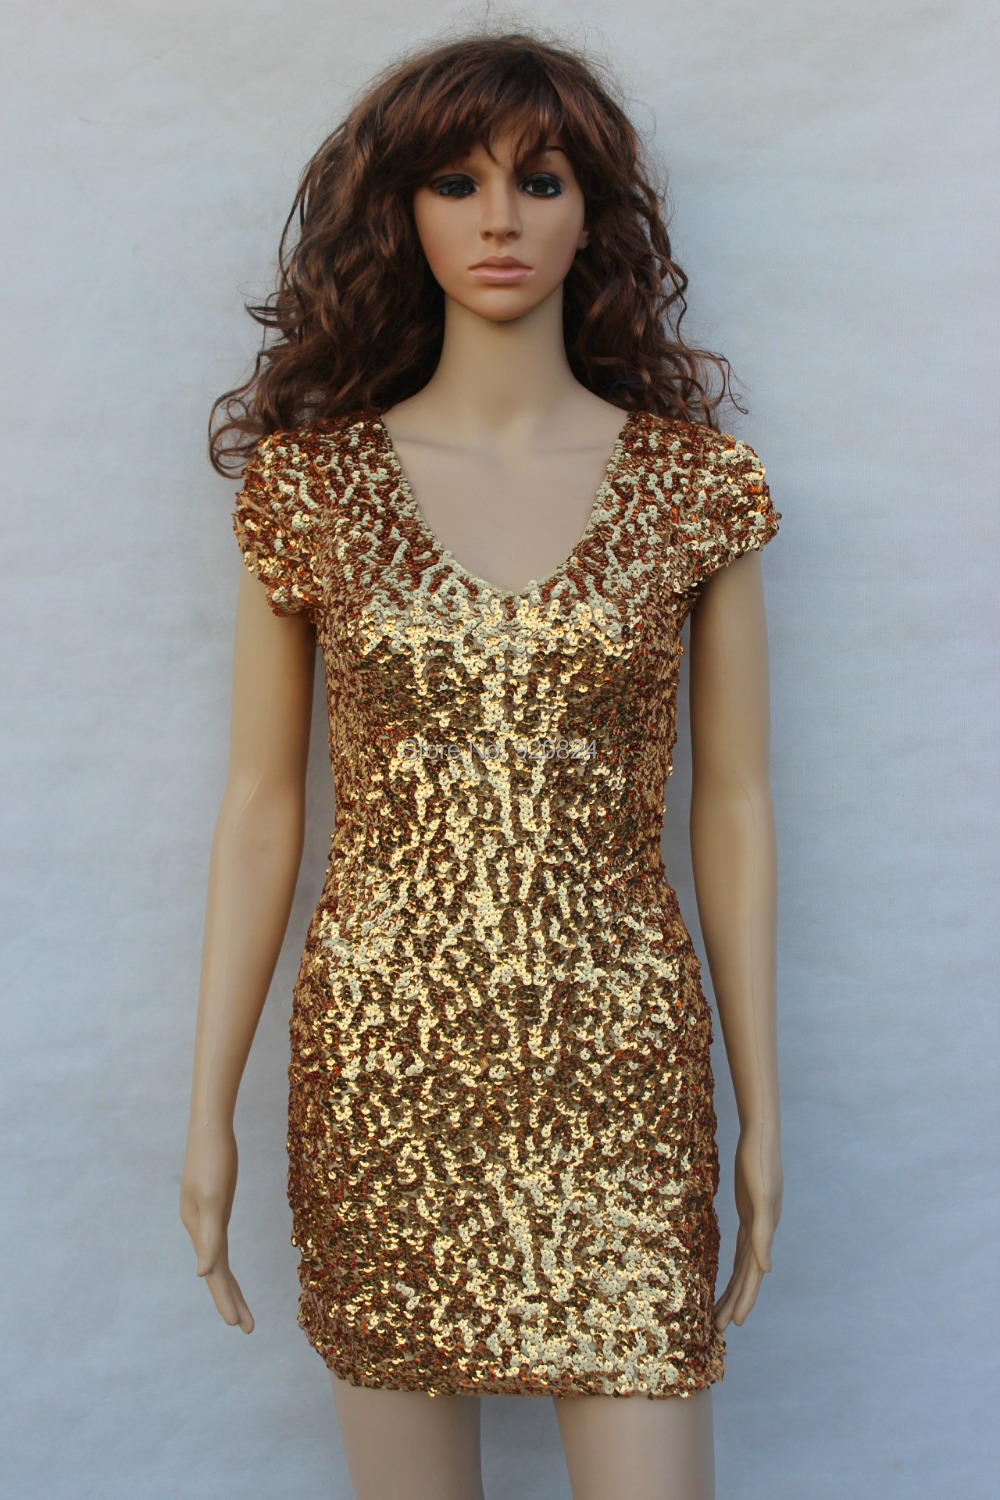 The new double v-neck shirt DS sequins nobody costumes singer performing dress dance stage under the dress(China (Mainland))